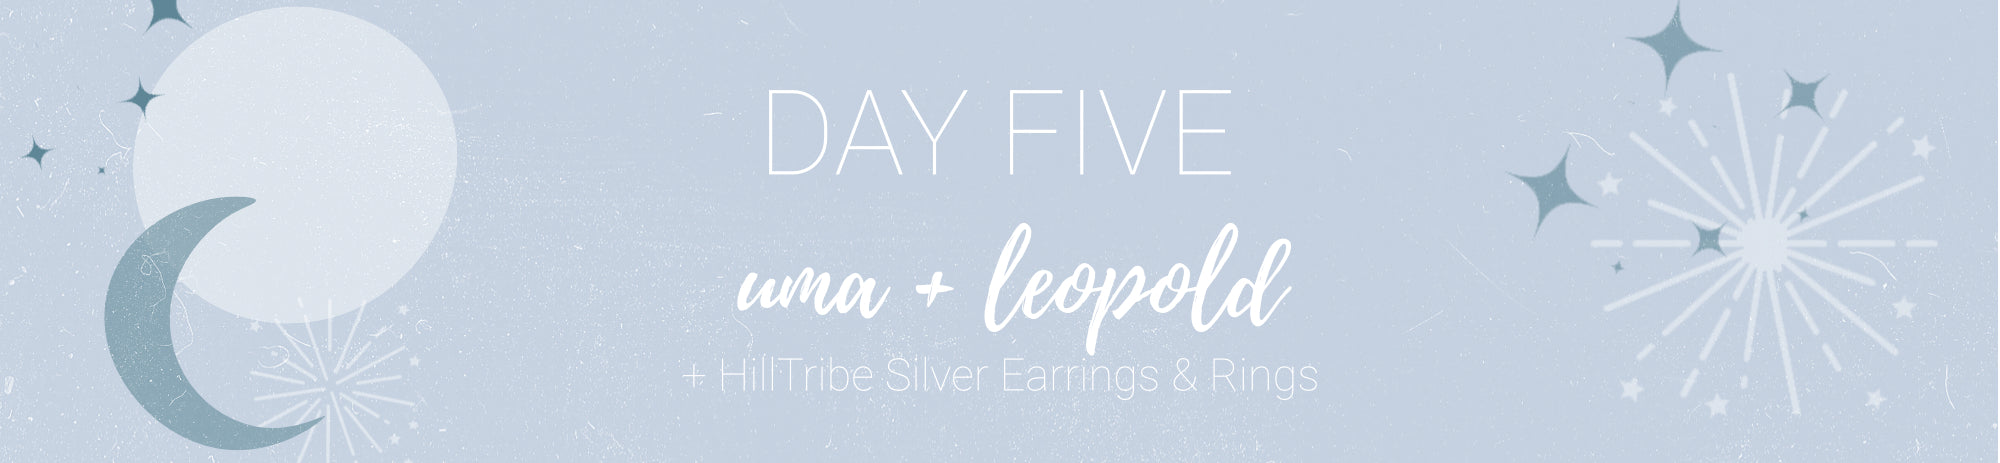 20% off Hilltribe Silver Rings & Earrings + Uma & Leopold Use Code: CHEER5